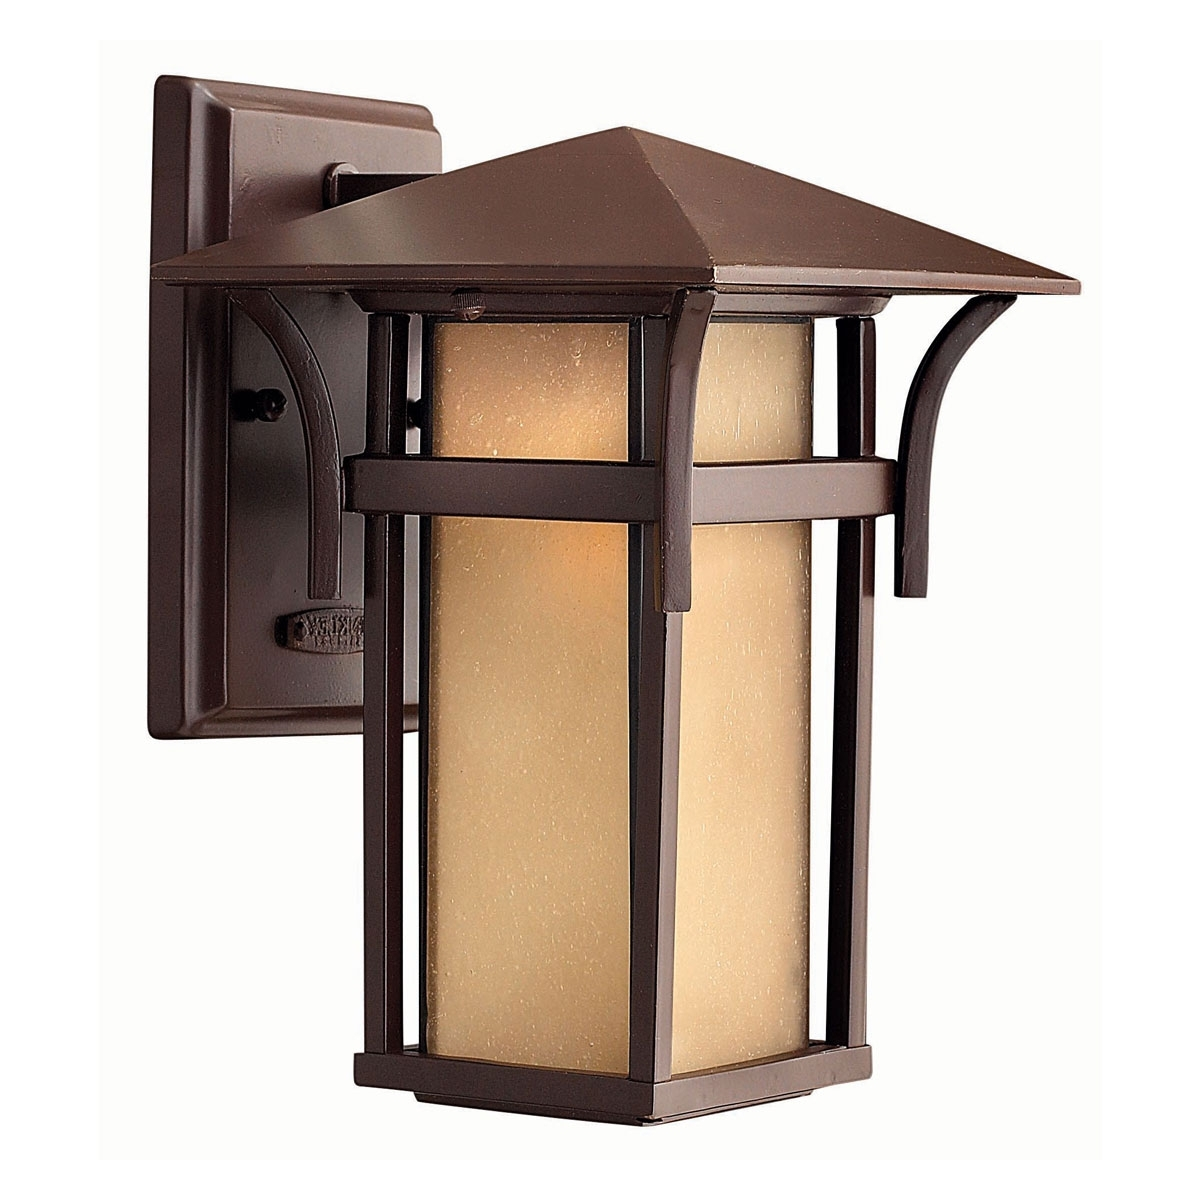 Hinkley Pertaining To Bronze Outdoor Wall Lighting (View 5 of 20)